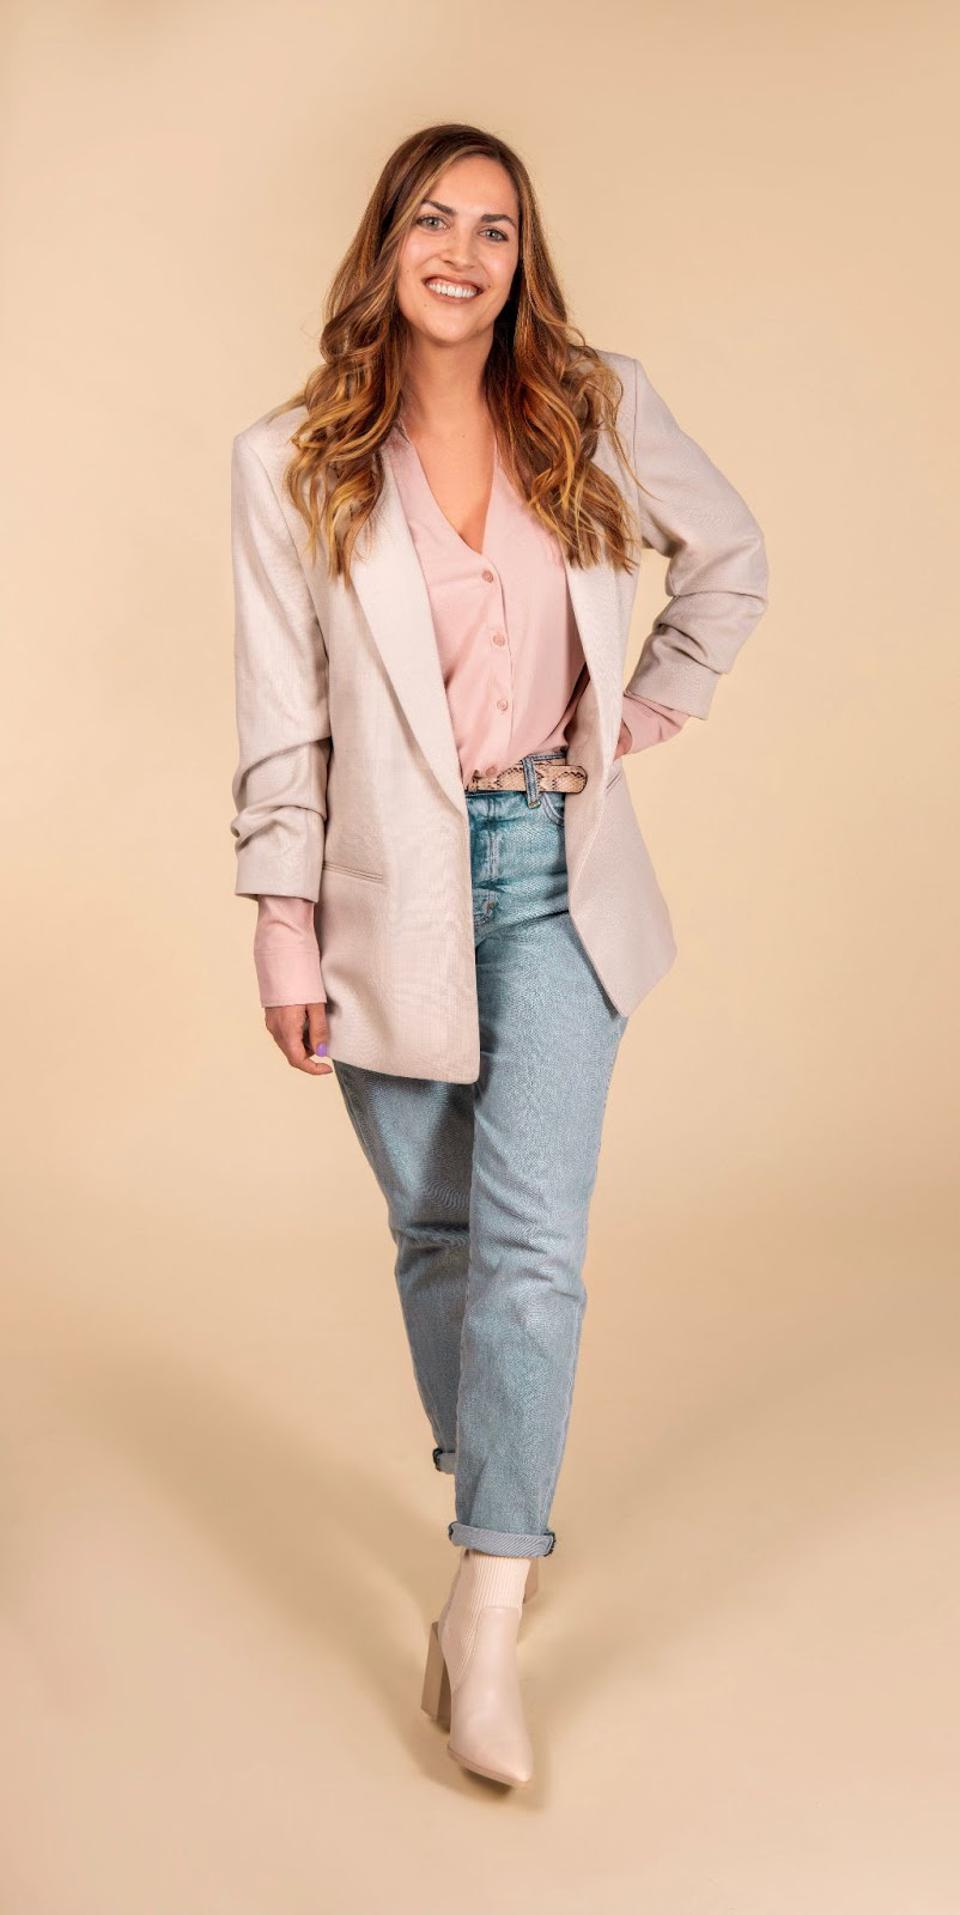 A white woman with long hair poses wearing jeans and a pink shirt and tan blazer.